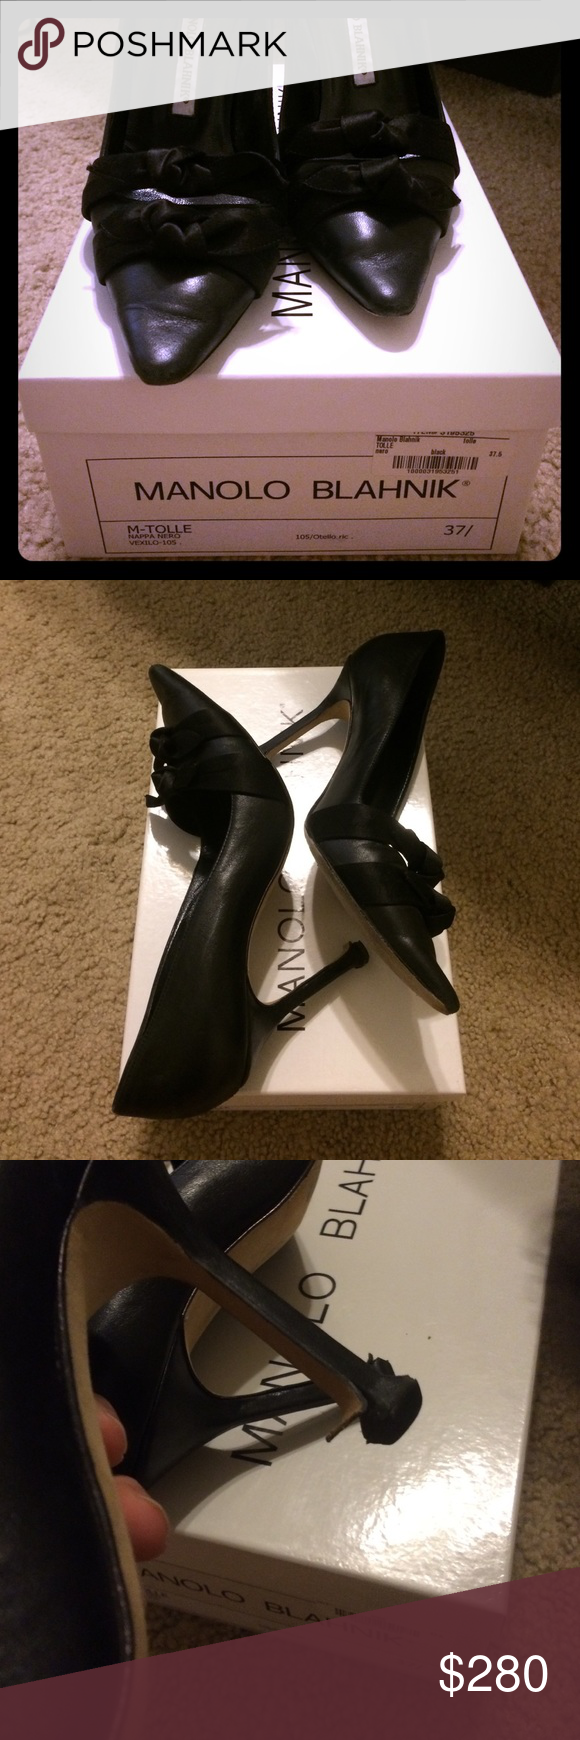 Manolo Classic pumps Classic Manolos. Have loved them but have to make space! Double bows at the bottom, 4 inch heel, black. Made in Italy. Size 37.5 (7.5) One heel could use a little glue. Includes box and dust bag which are in perfect condition Manolo Blahnik Shoes Heels